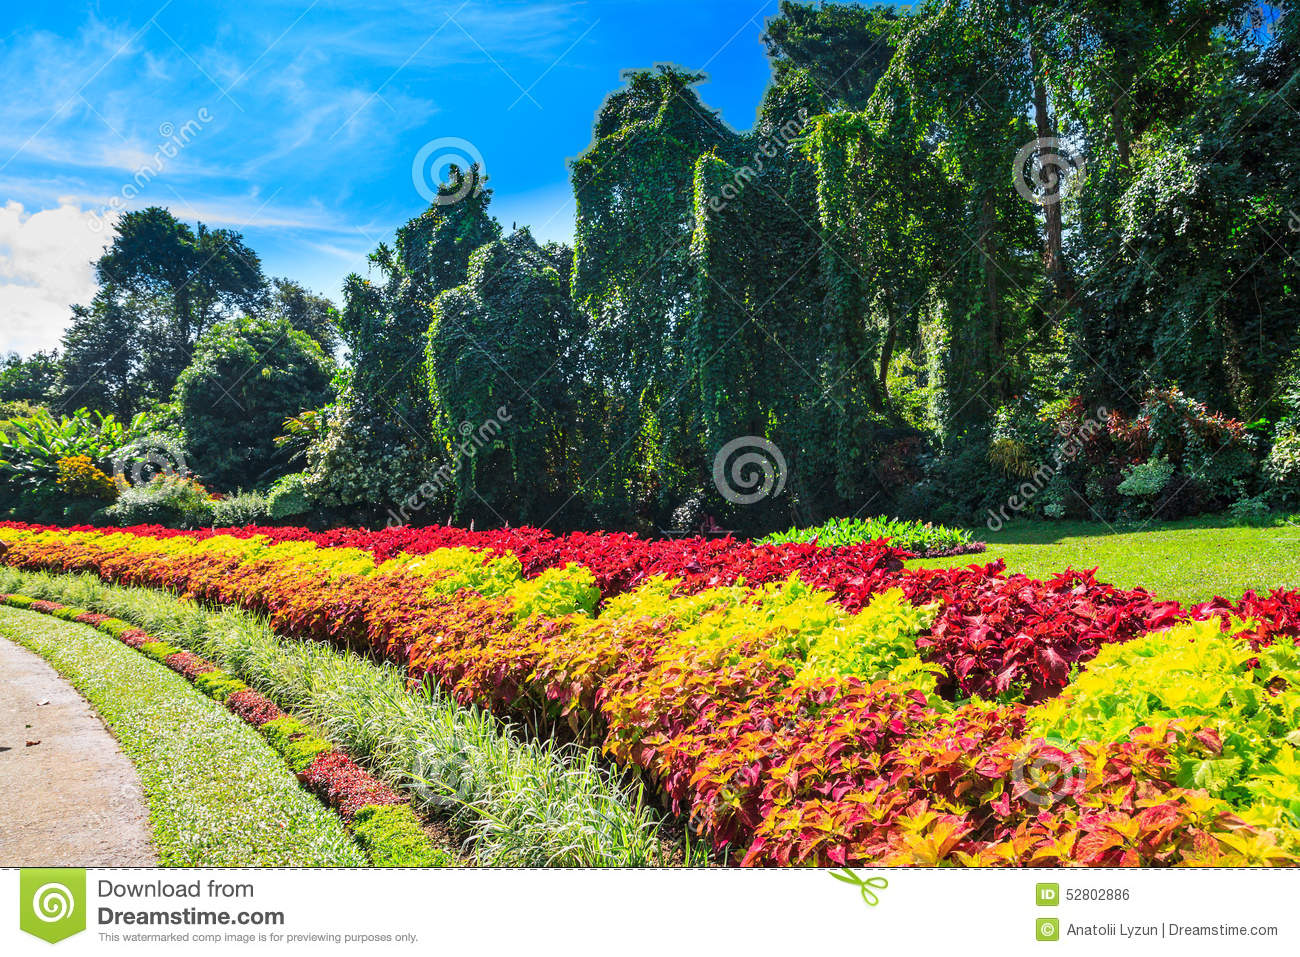 Multicolored Alley Of Flowers And Trees Stock Photo - Image of ...